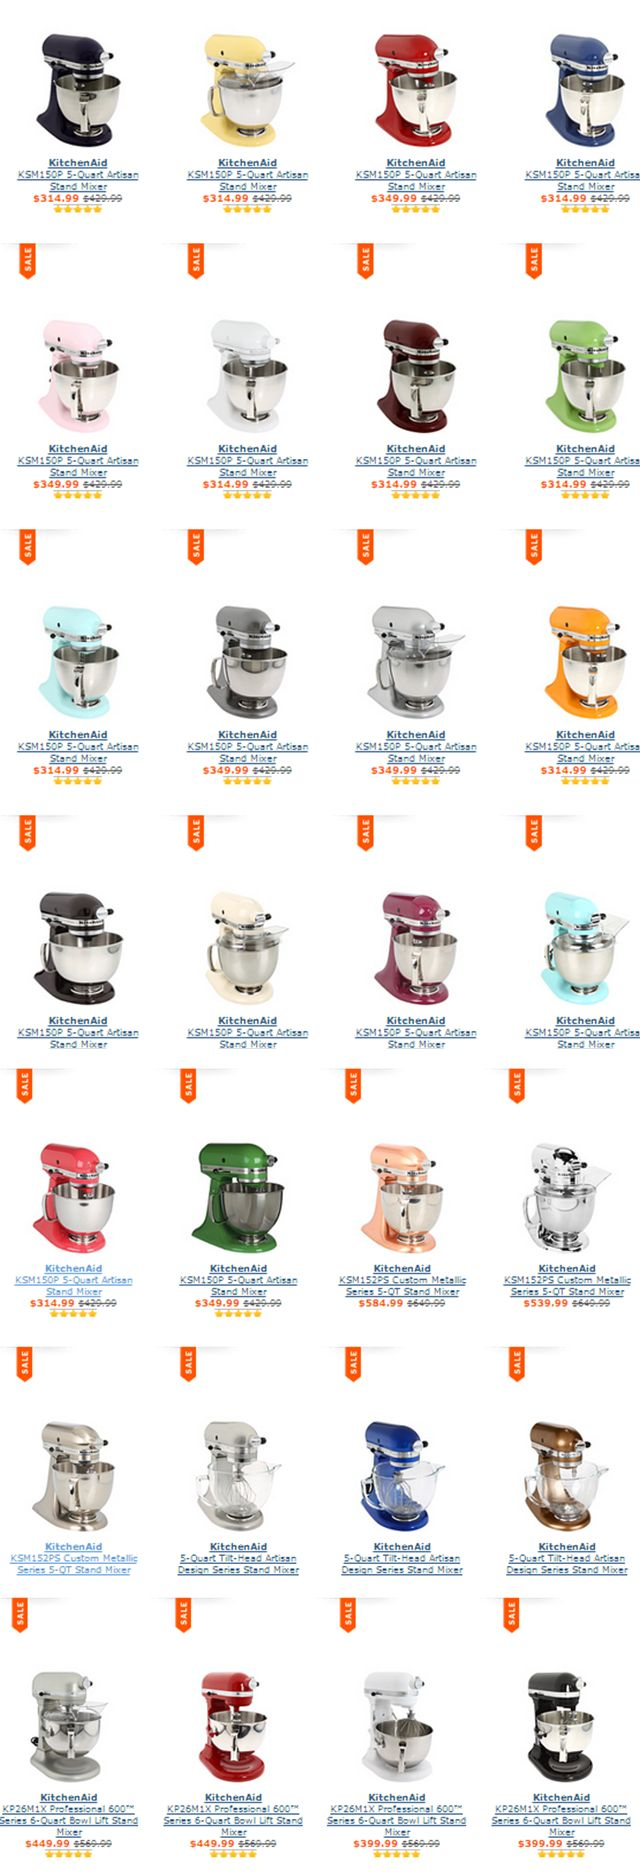 KitchenAid Artisan Design 5 & 6 Quart Mixers / On sale today http://rstyle.me/n/dchgwn2bn